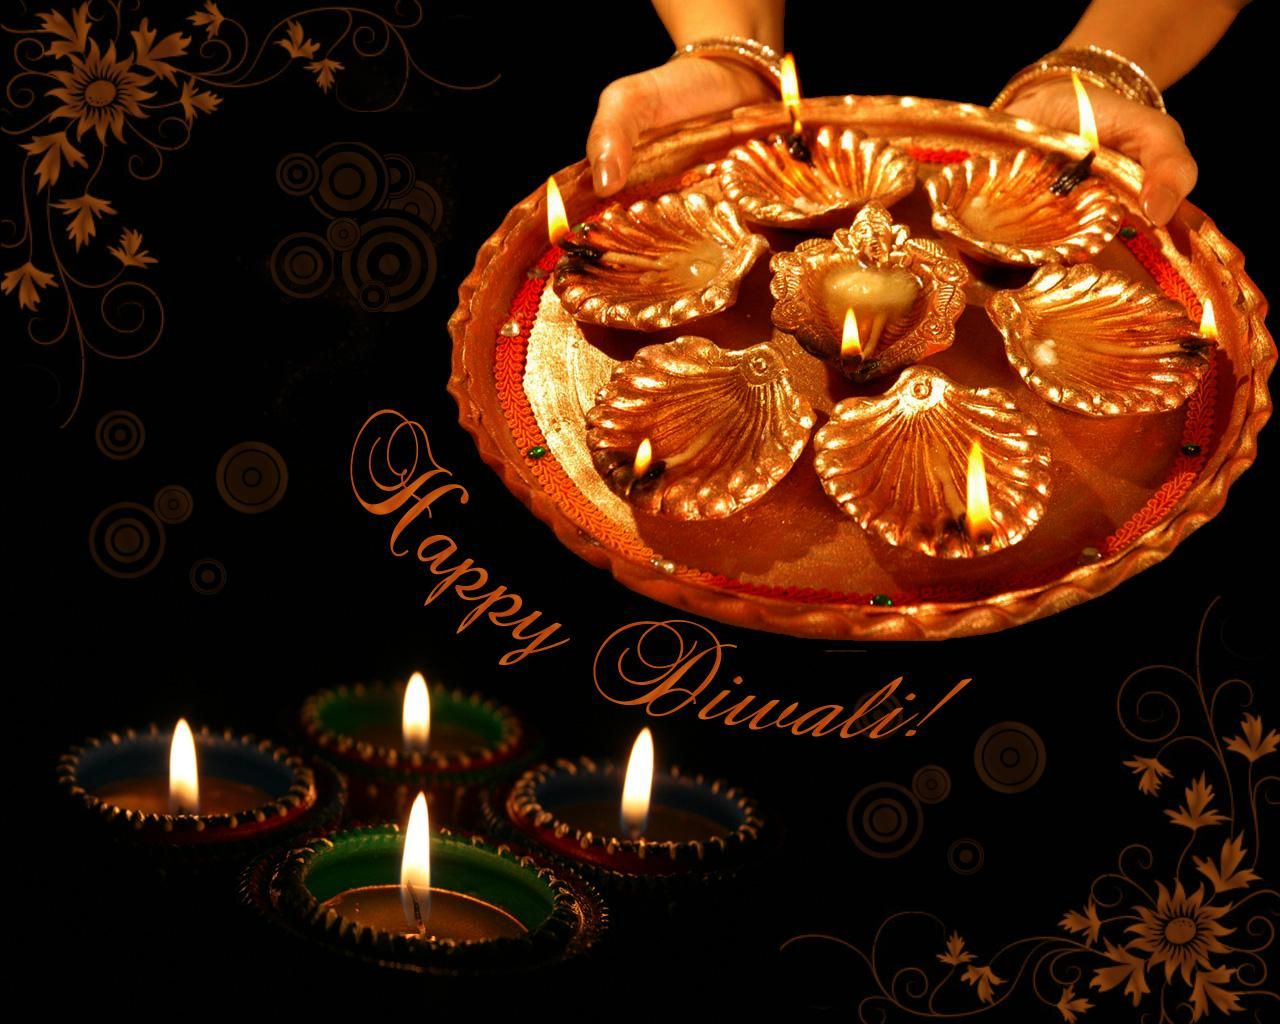 Shayariwala is best spot for latest diwali sms shayari we brings in is best spot for latest diwali sms shayari we brings new deepawali sms happy diwali quotes wishes shayai in hindi and english with image kristyandbryce Gallery